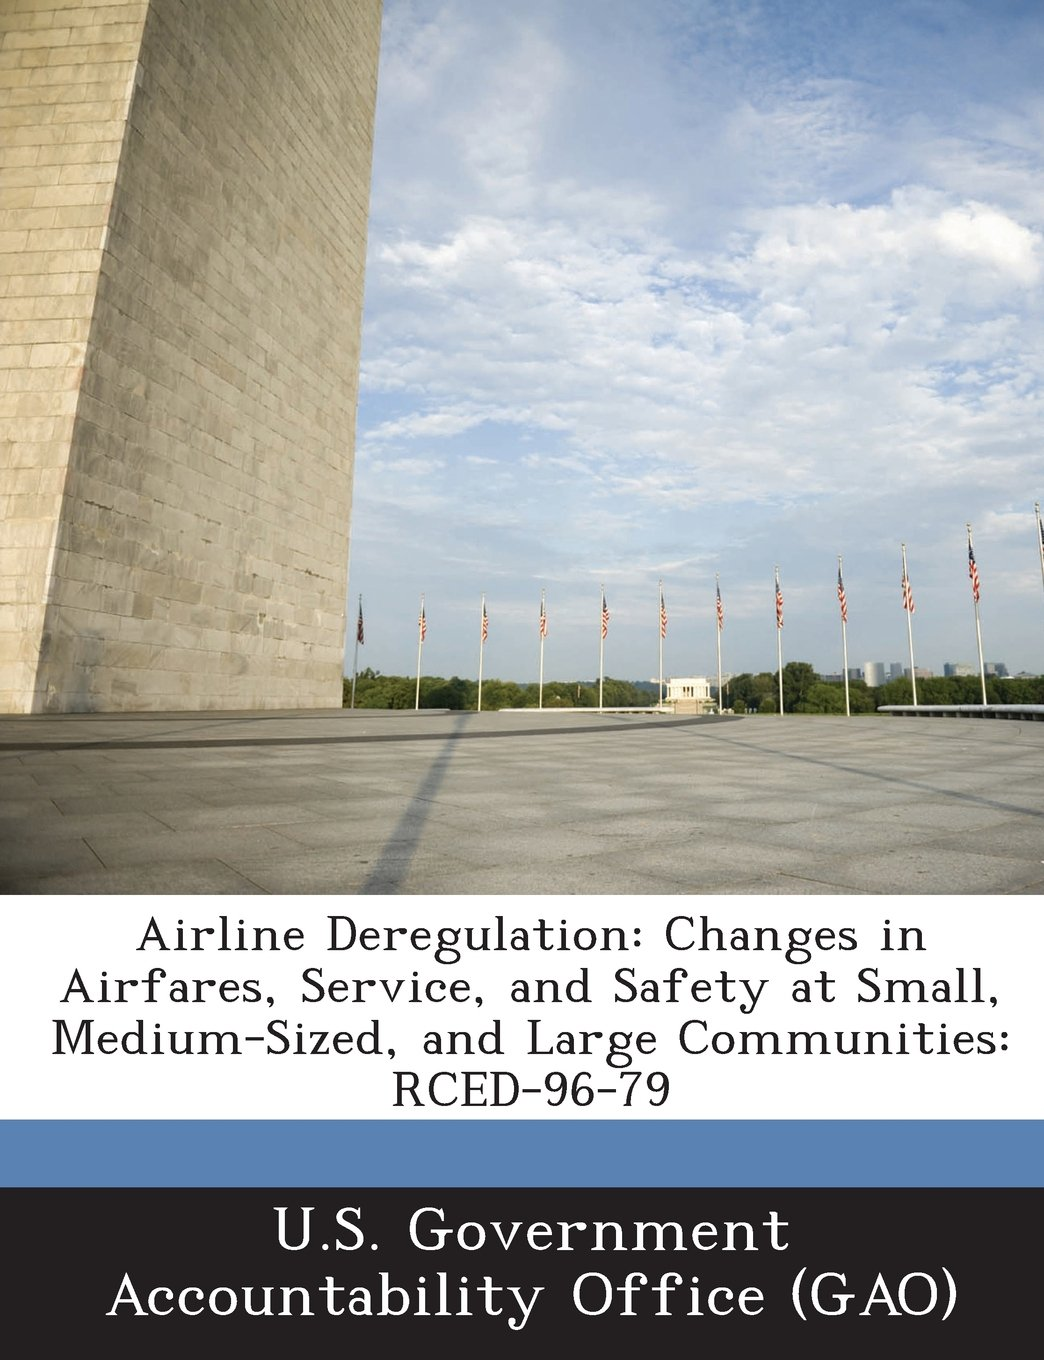 Download Airline Deregulation: Changes in Airfares, Service, and Safety at Small, Medium-Sized, and Large Communities: Rced-96-79 ebook